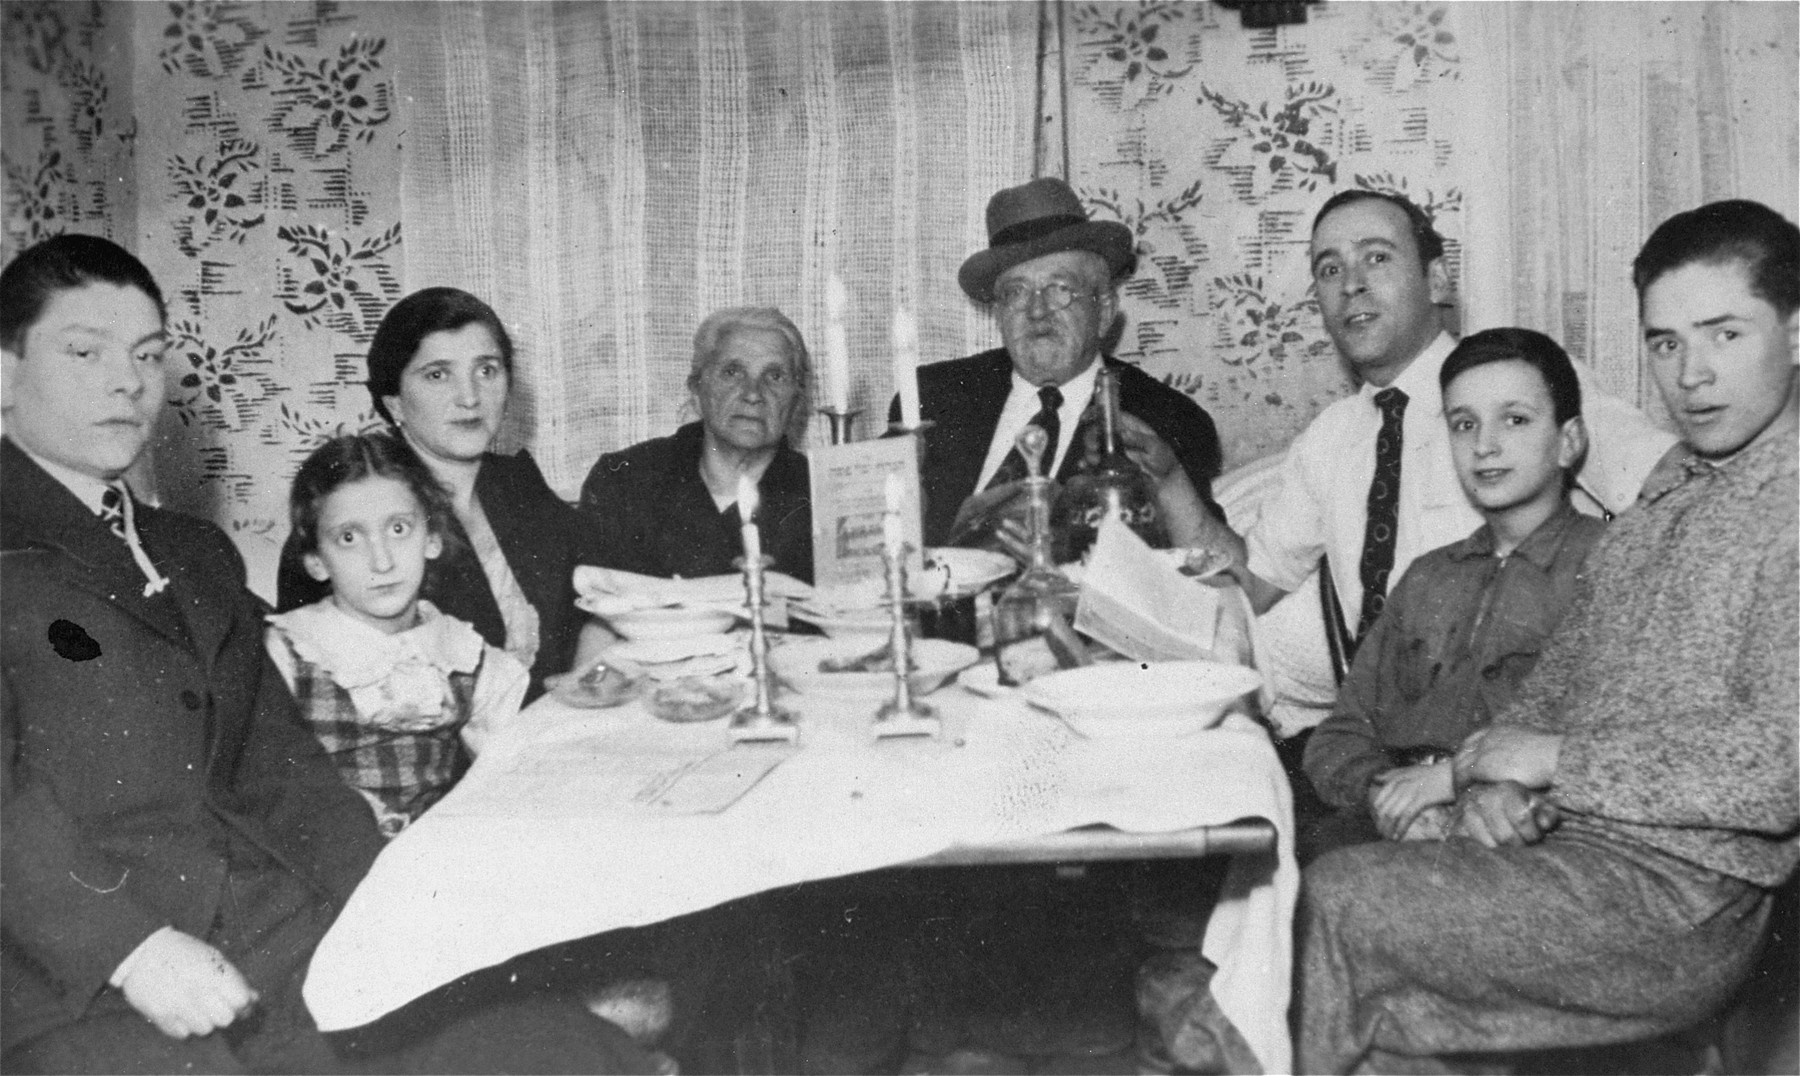 A Jewish family is gathered around the table during a Passover seder in their home in Vilna.  This was the family's last seder together before WWII.  Pictured from left to right are: unknown; Fruma Katz; Basia (Friedman) Katz; Chana Mina and Feivel Friedman; Mayer Katz; Chaskiel Katz and Theodore Friedman.